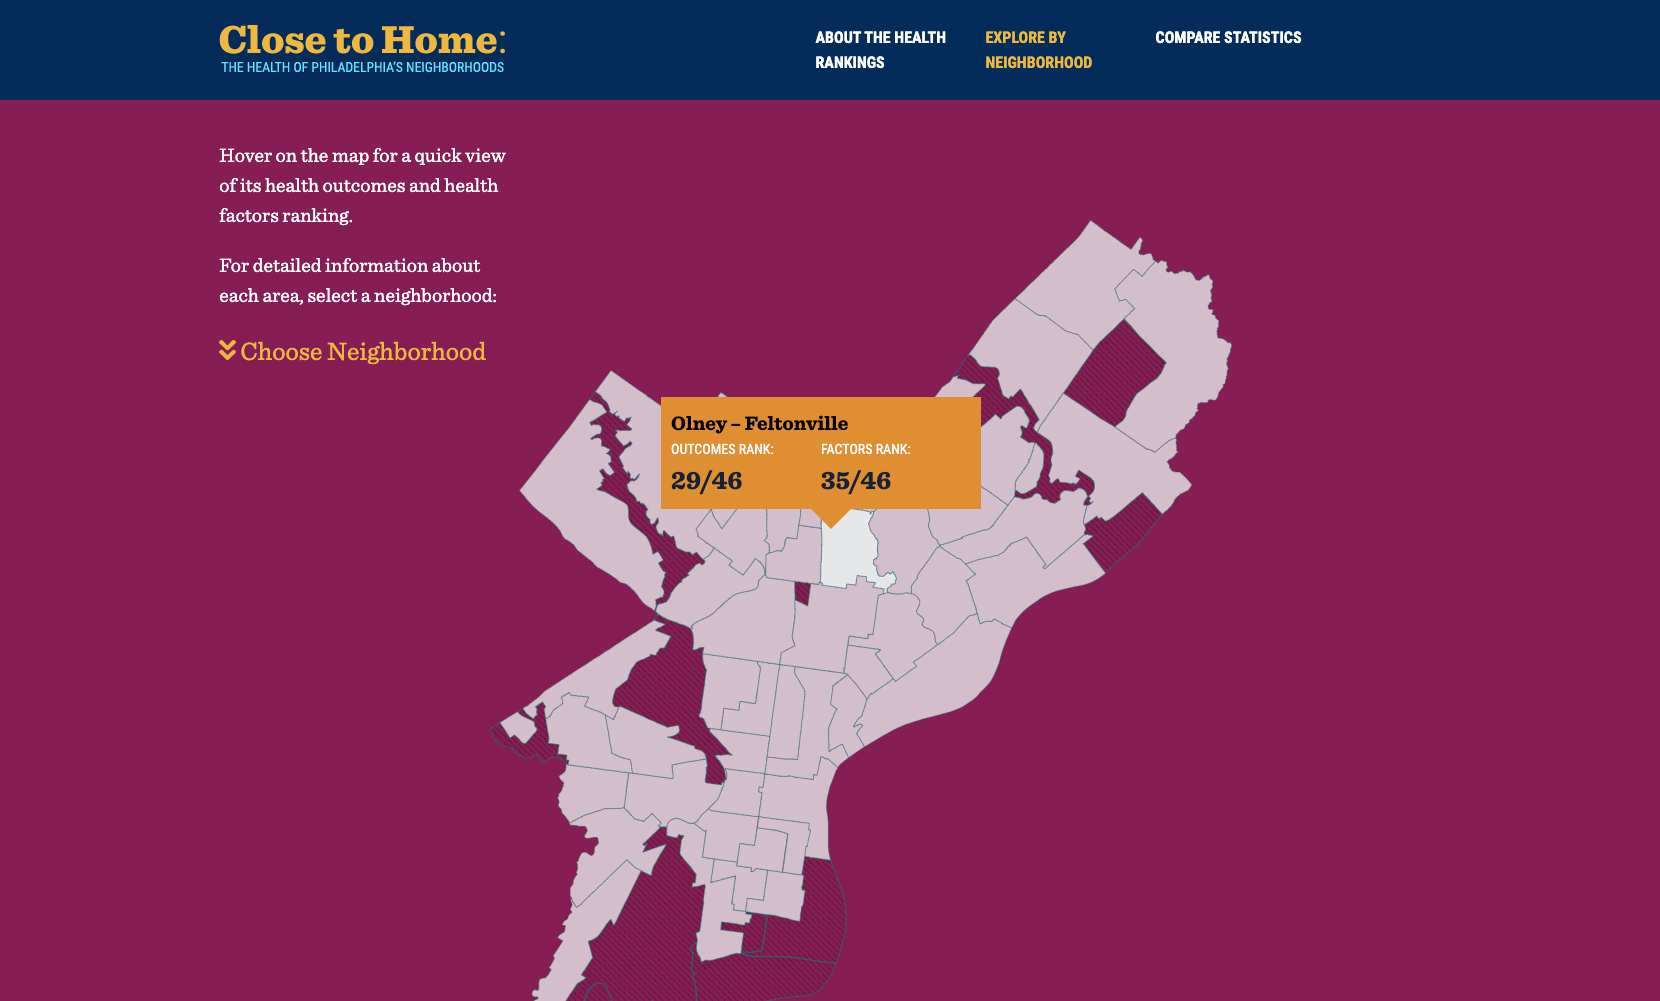 Close to Home website design with interactive map